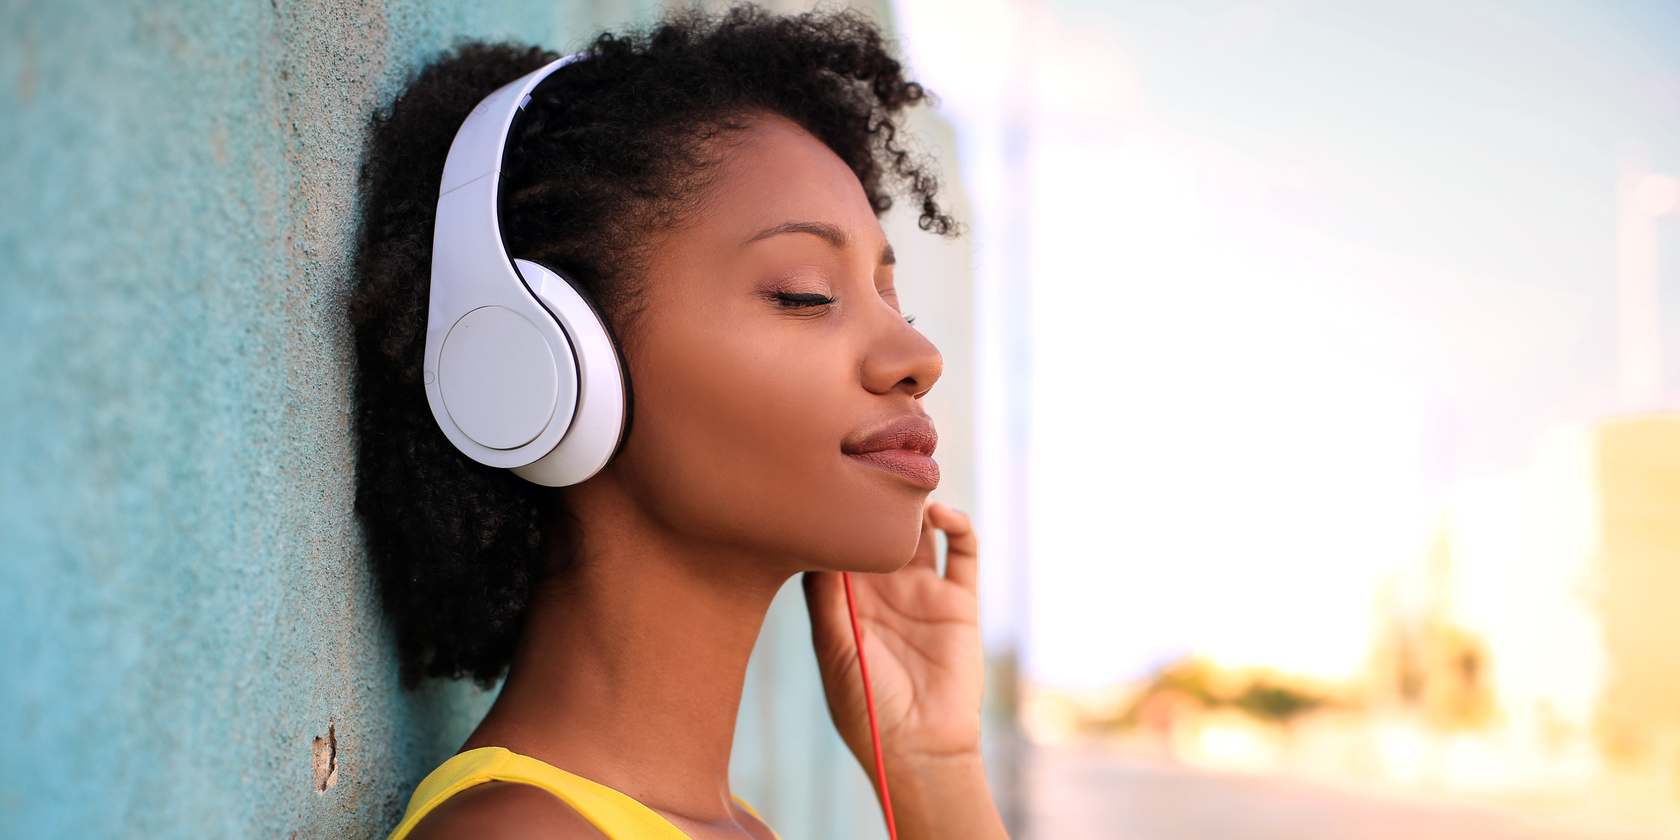 What Is Audius? The Music Streaming App That Supports Artists